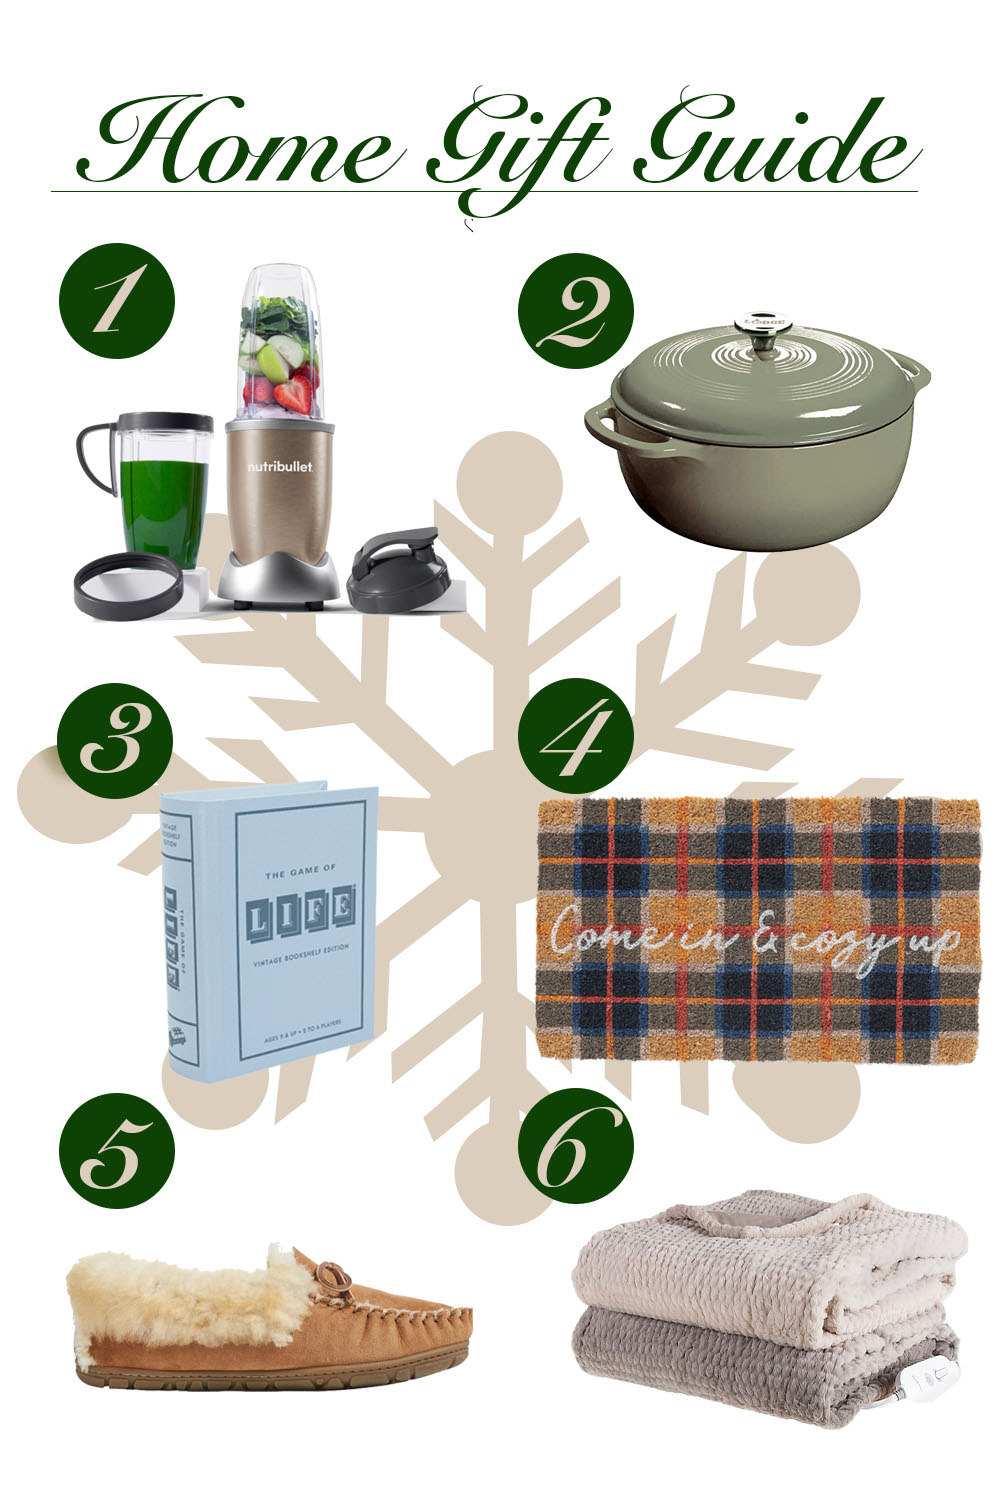 Best Gifts for the Home - Nutribullet, dutch oven, wicked good slippers